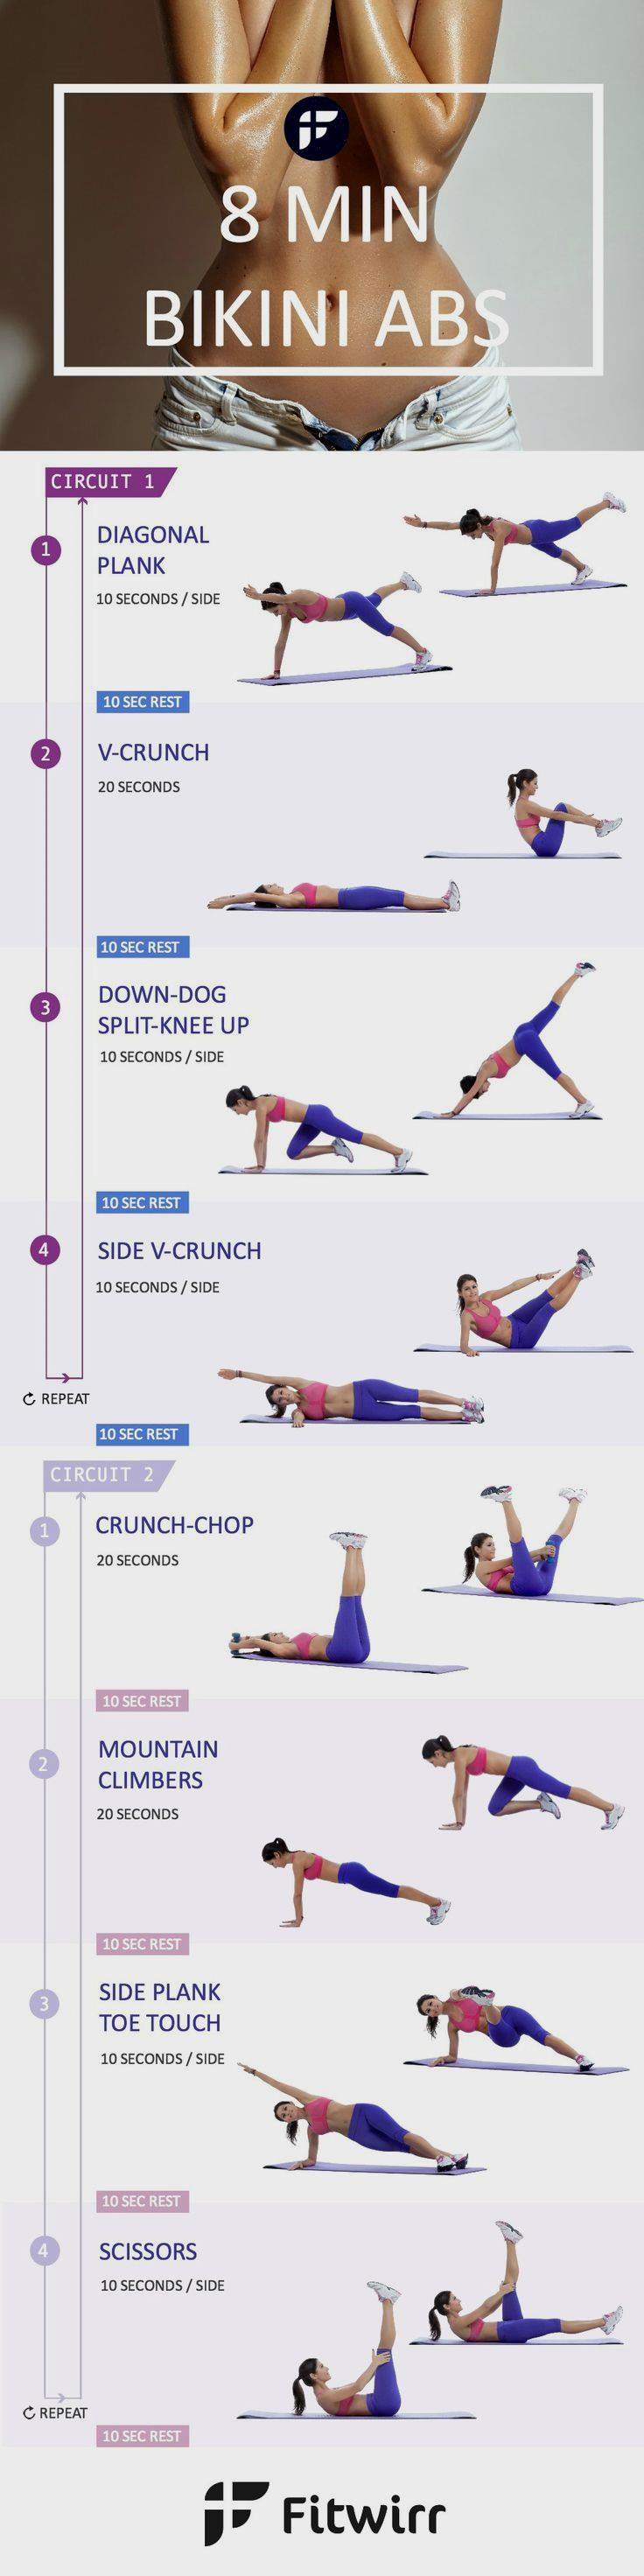 Yoga to reduce muffin top fat